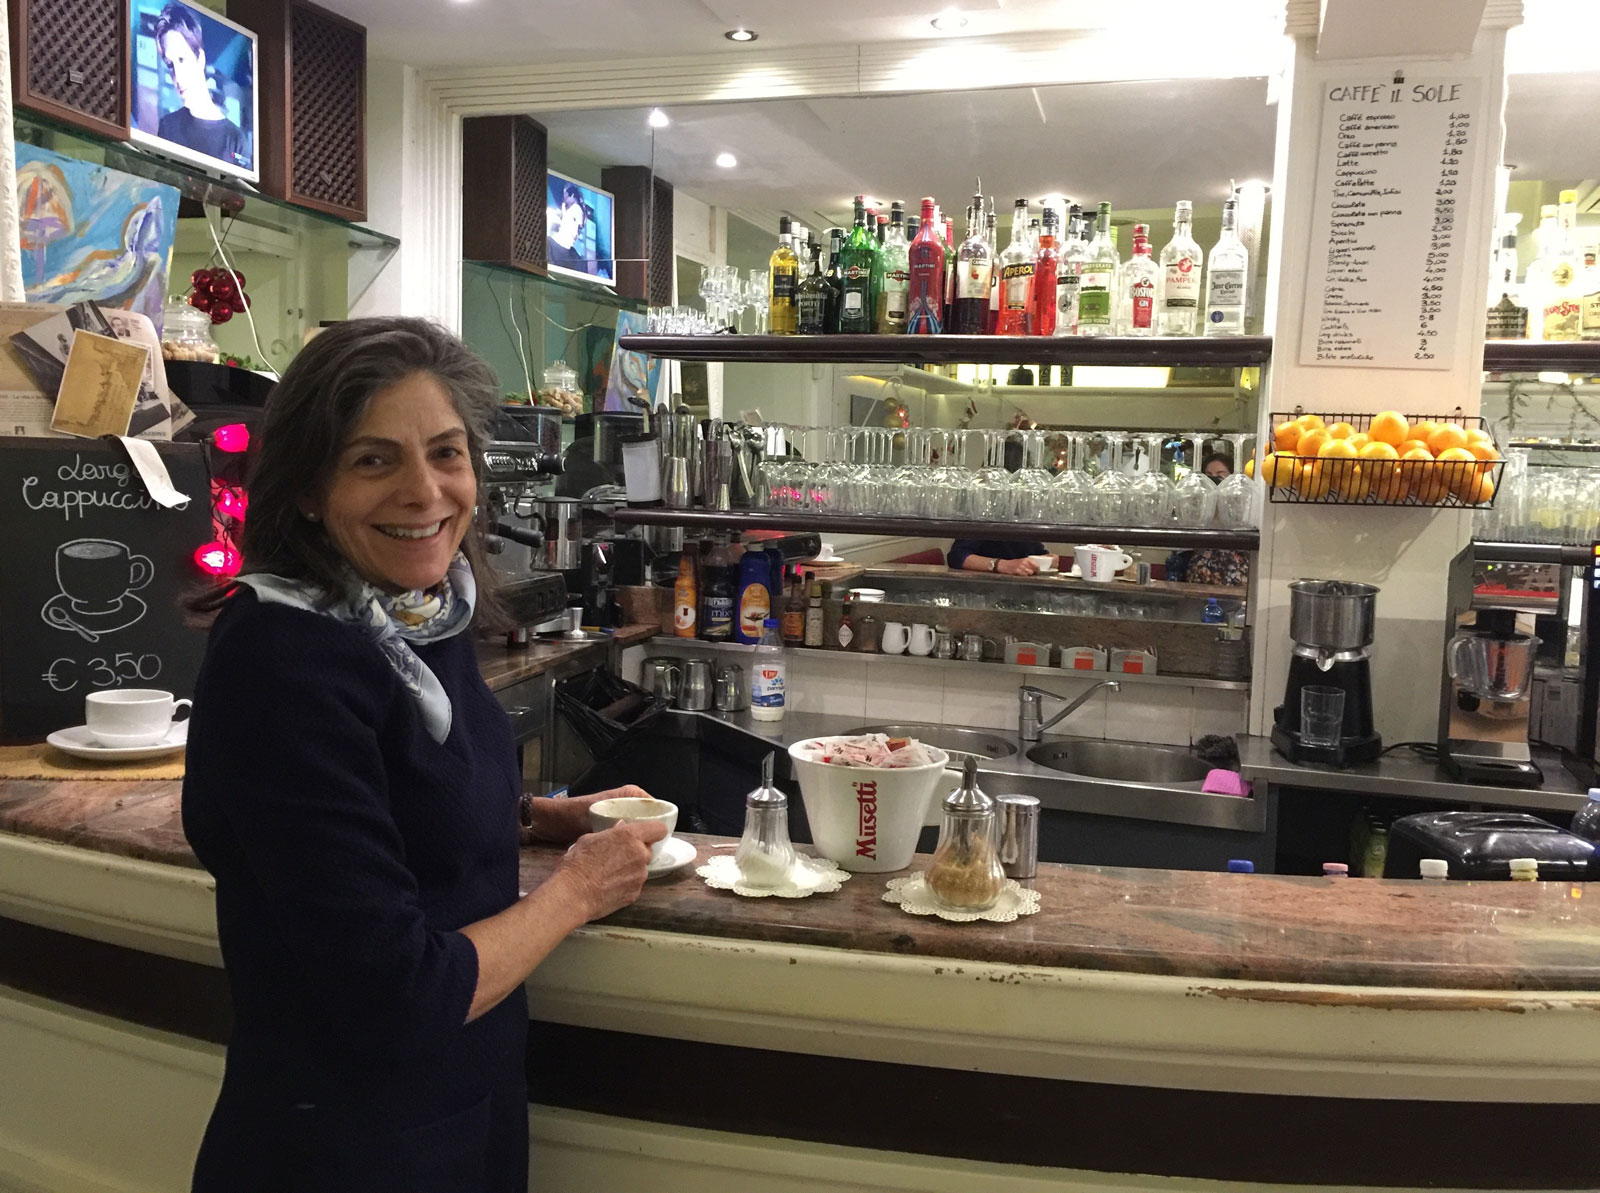 Cafe il Sole, Florence